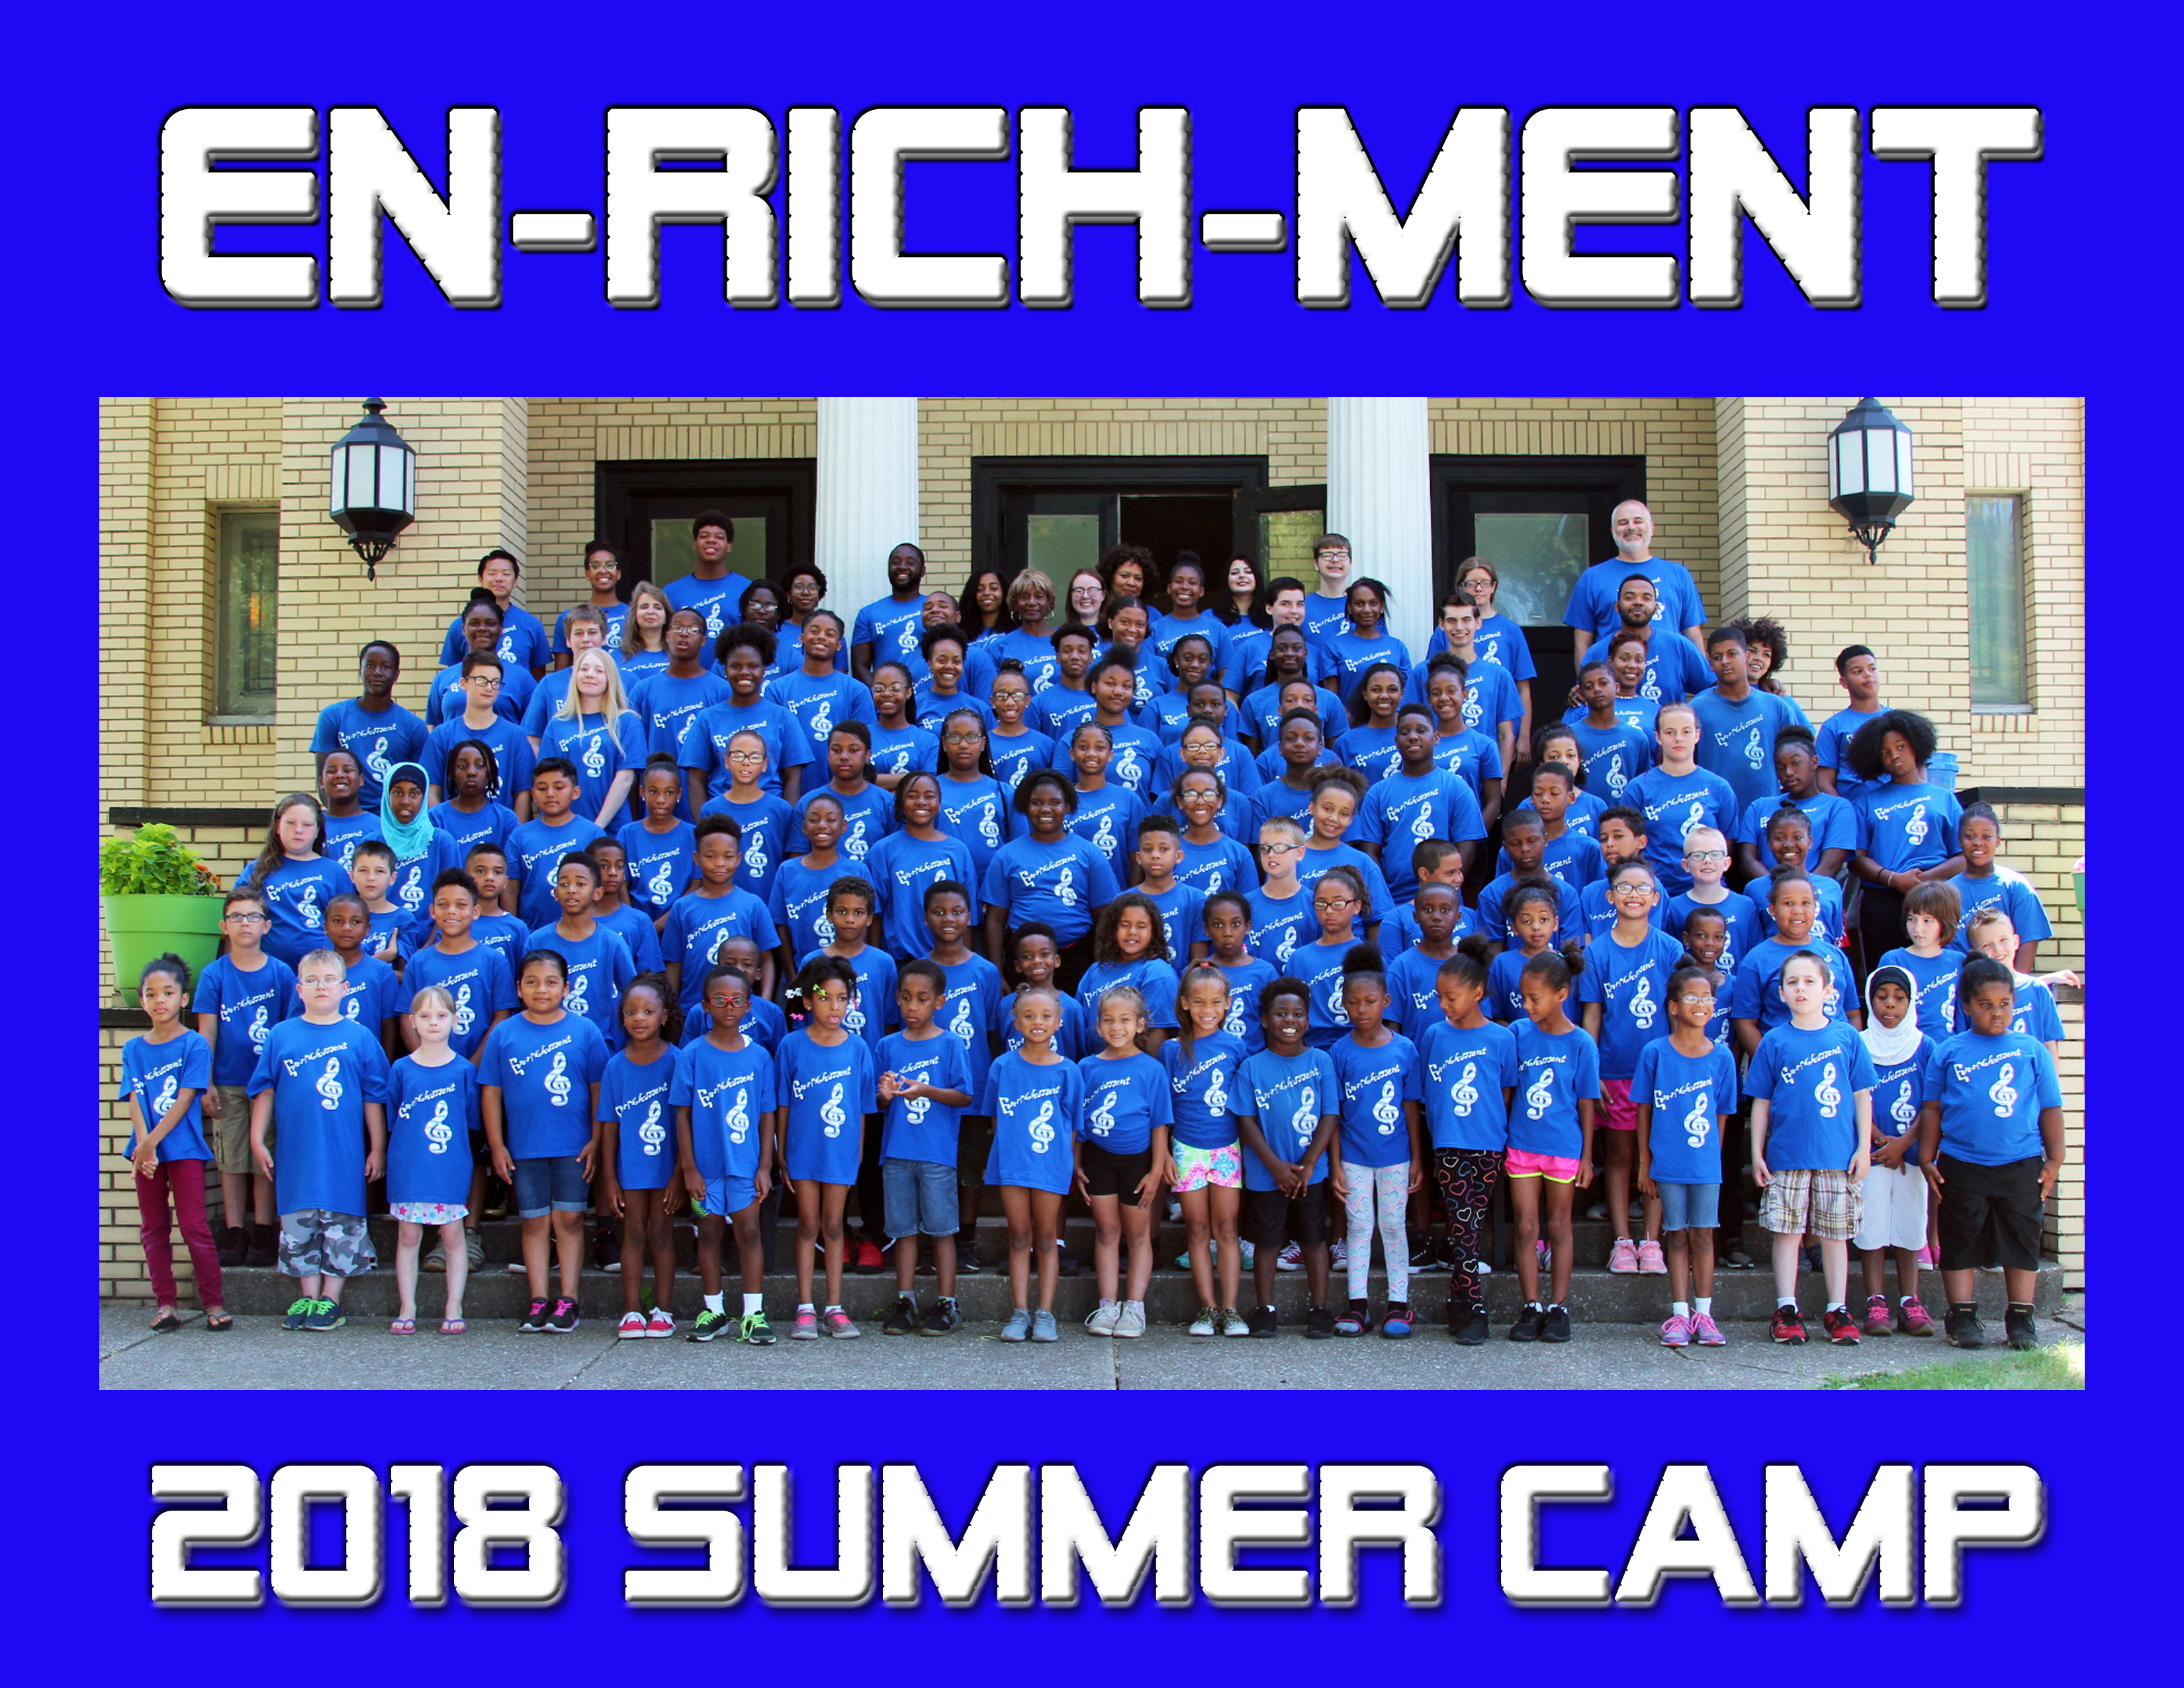 ENRICHMENT SUMMER CAMP 2018 2good